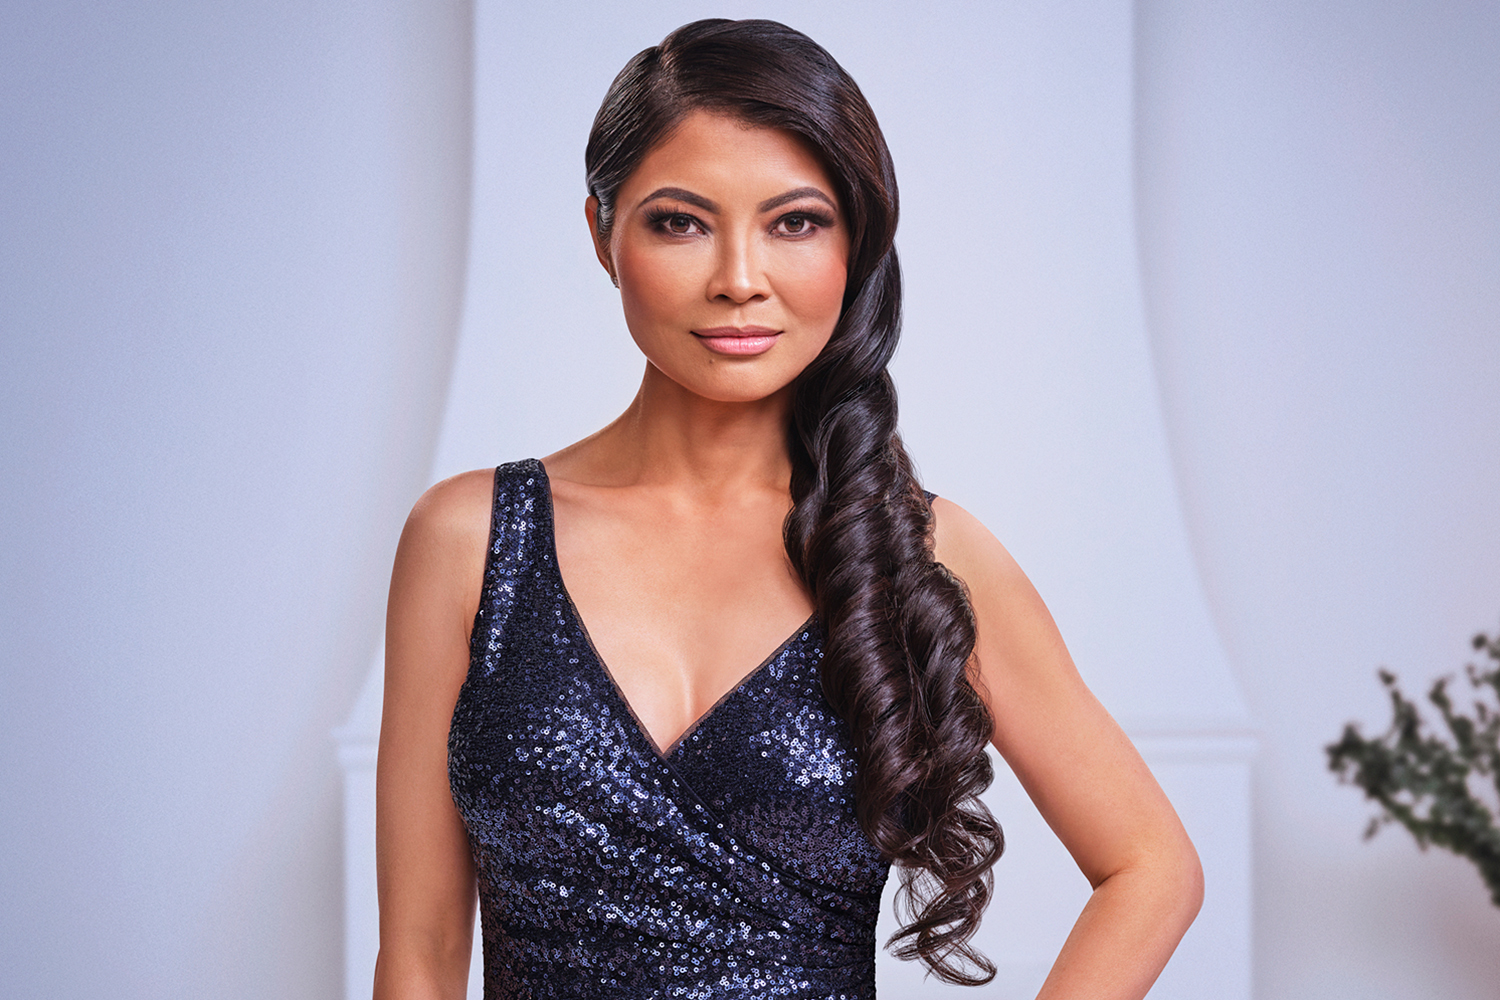 THE REAL HOUSEWIVES OF SALT LAKE CITY Season:2 Pictured: Jennie Nguyen